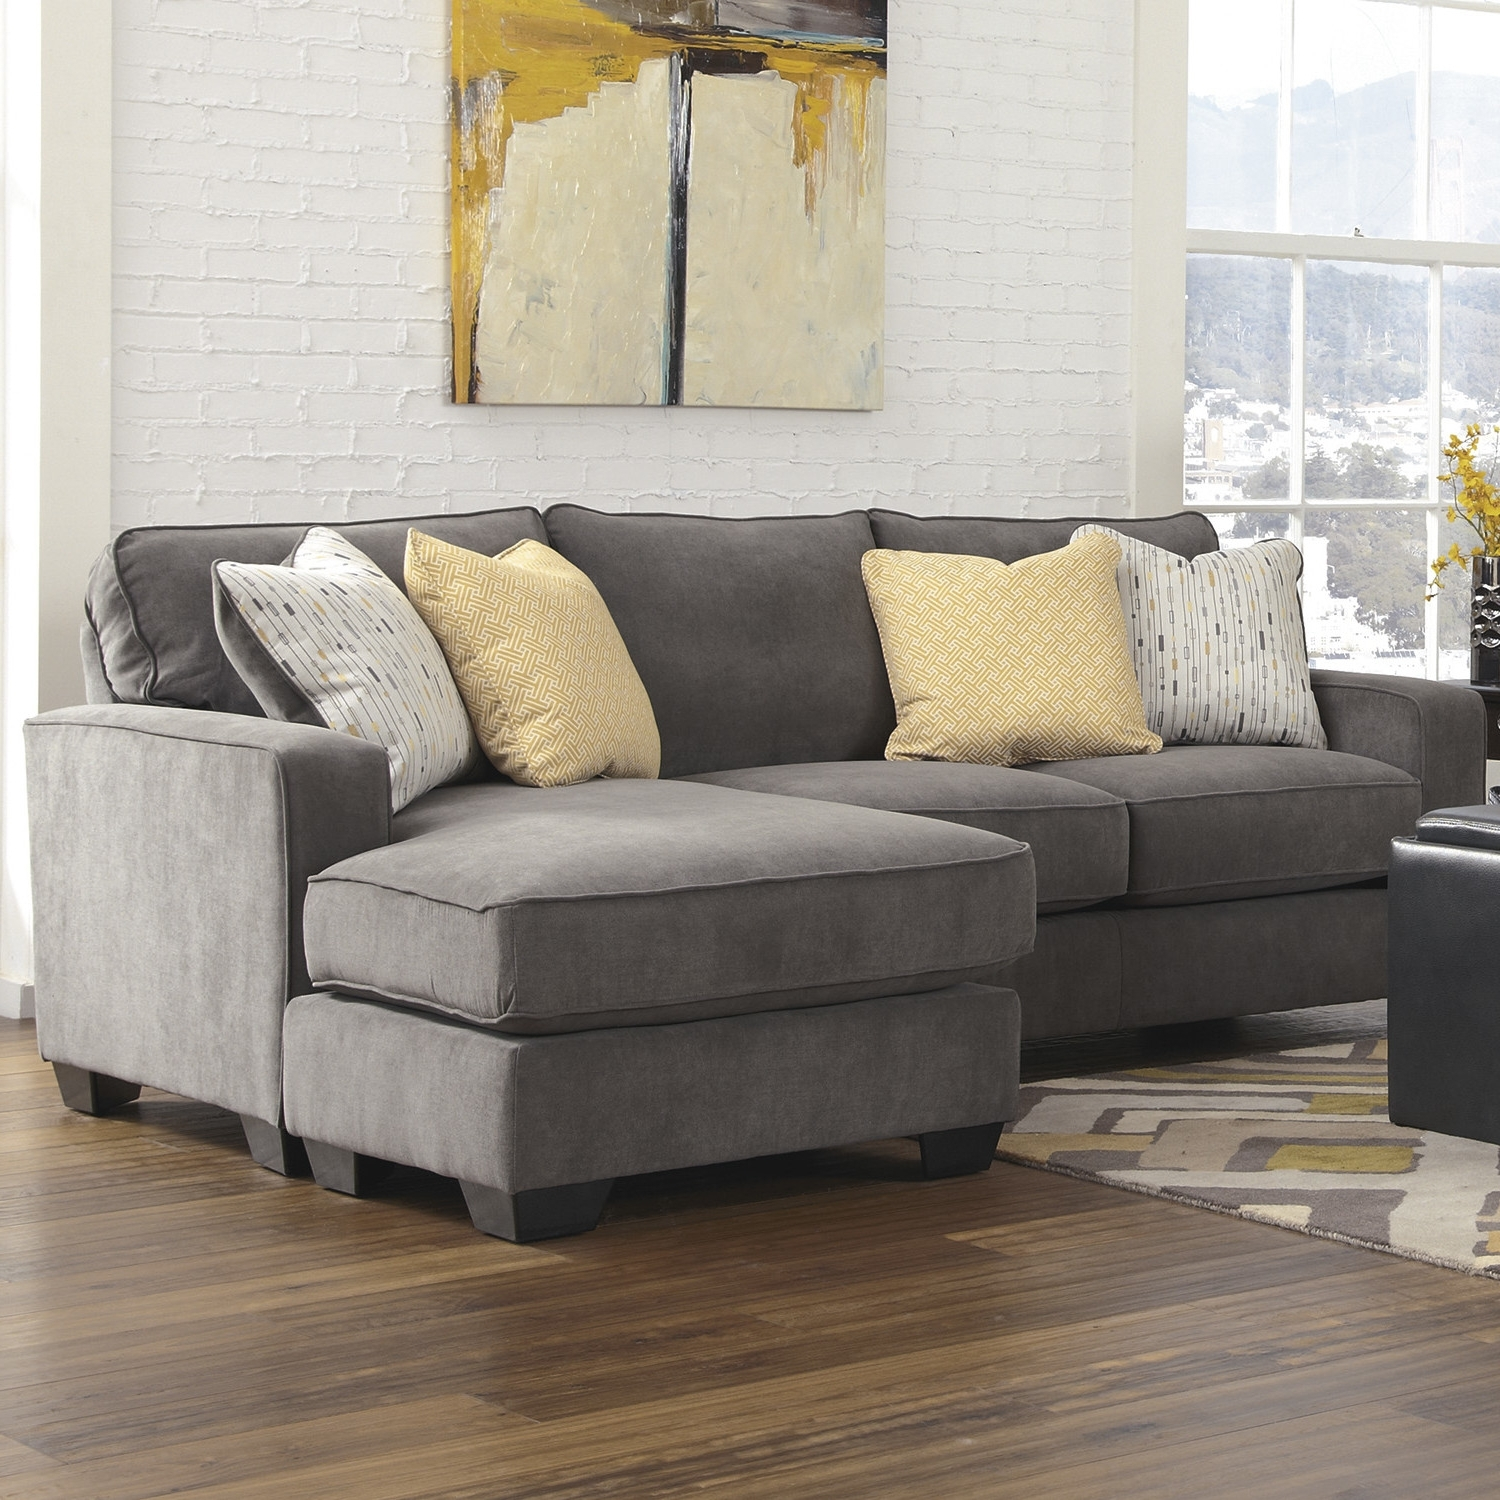 Kessel Reversible Chaise Sectionalmercer41 Review – Furnitures inside Well-liked Reversible Chaise Sectional Sofas